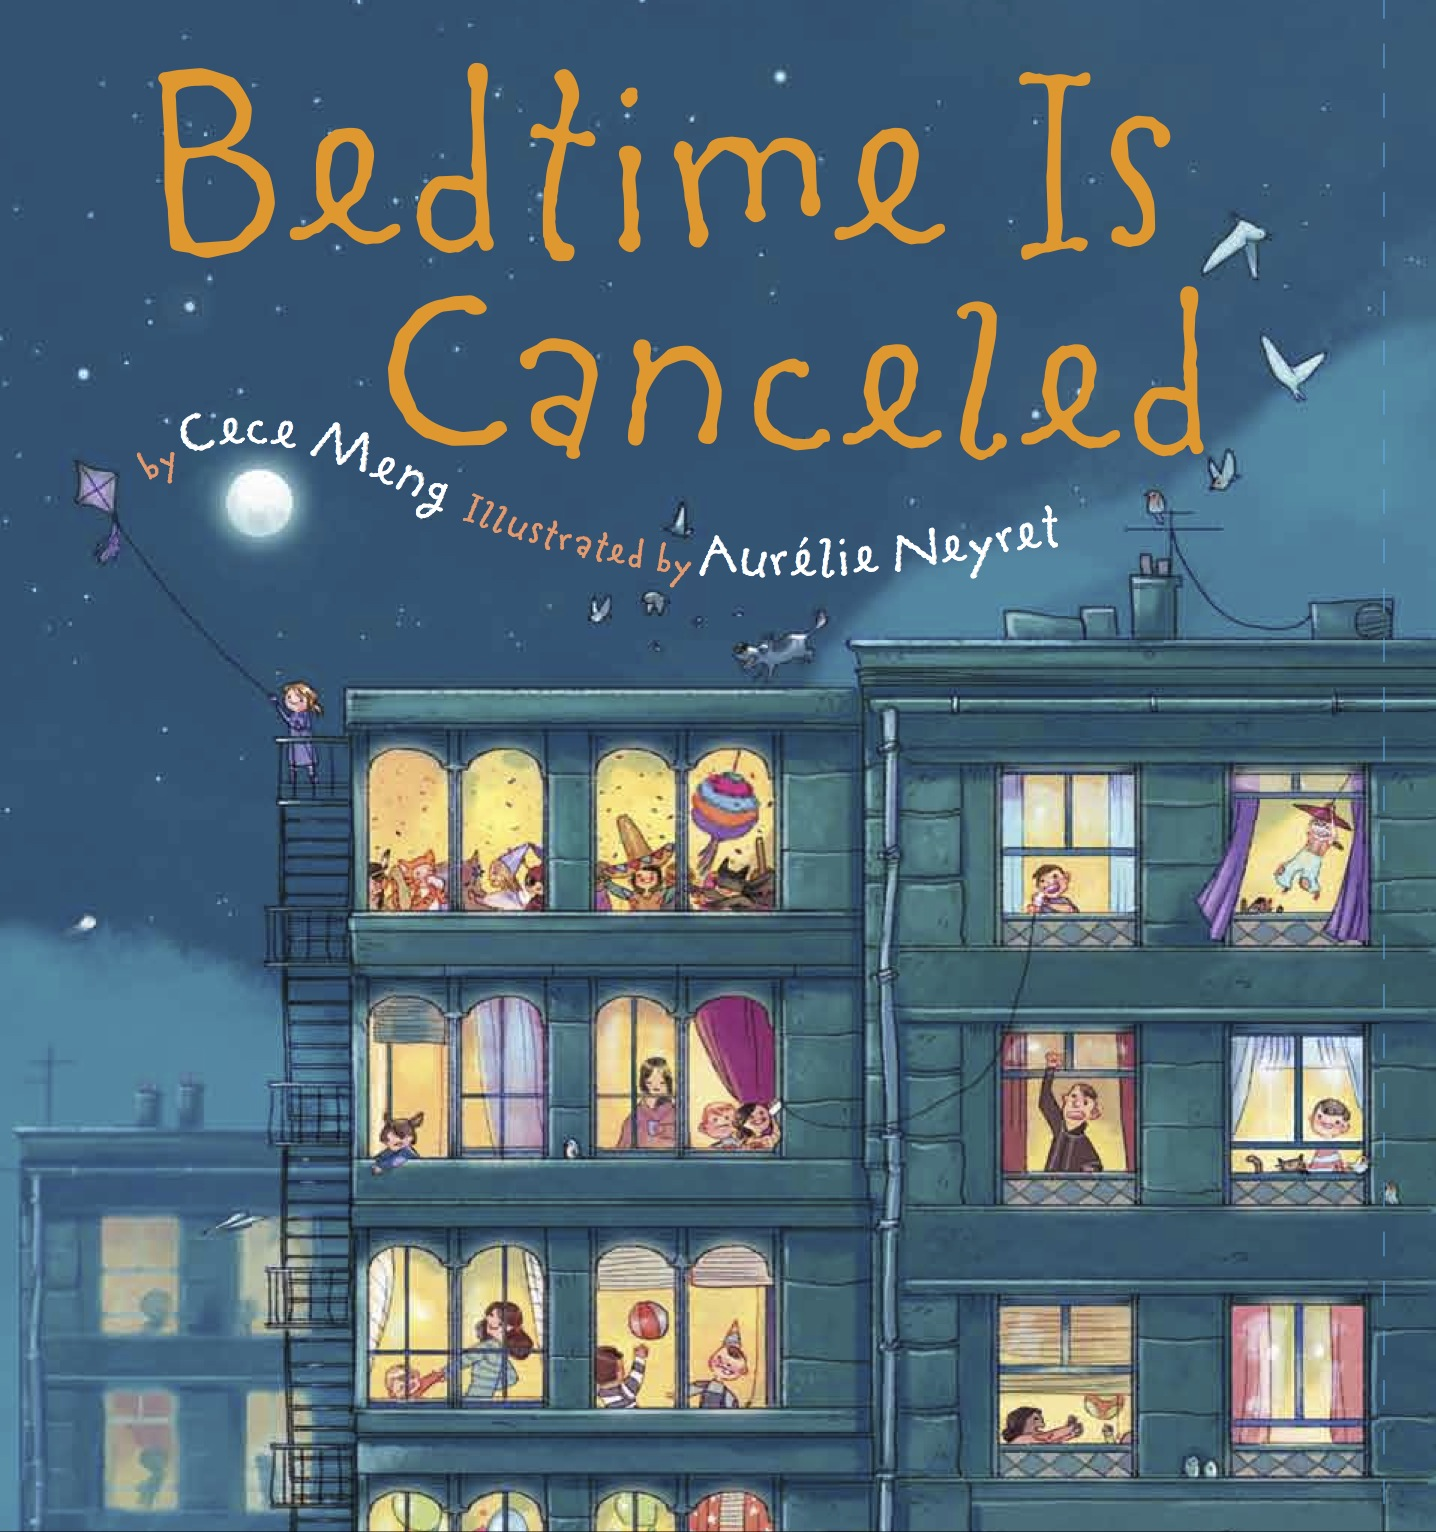 Bedtime cover 1.png